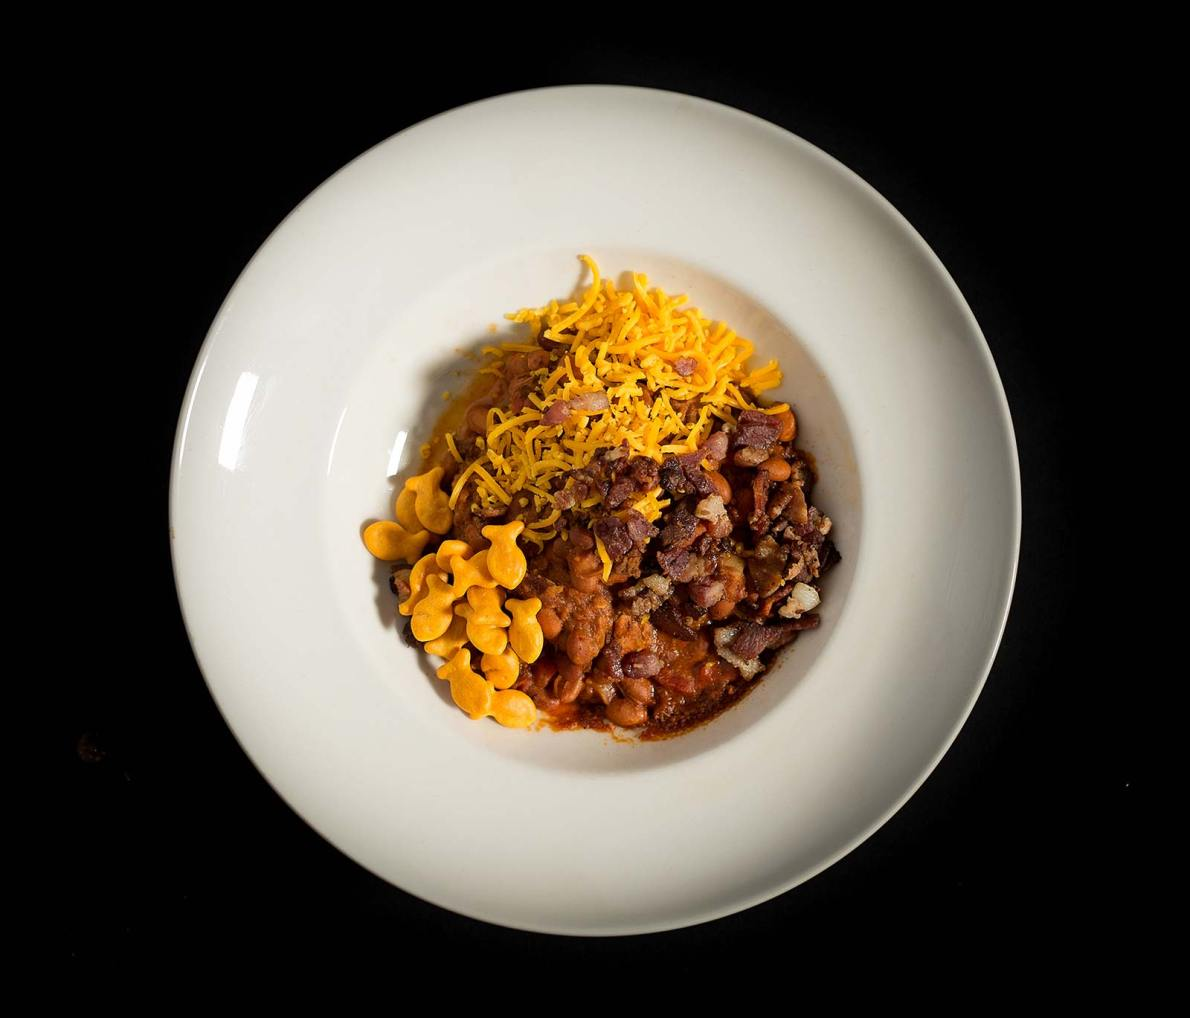 The Porky Chili